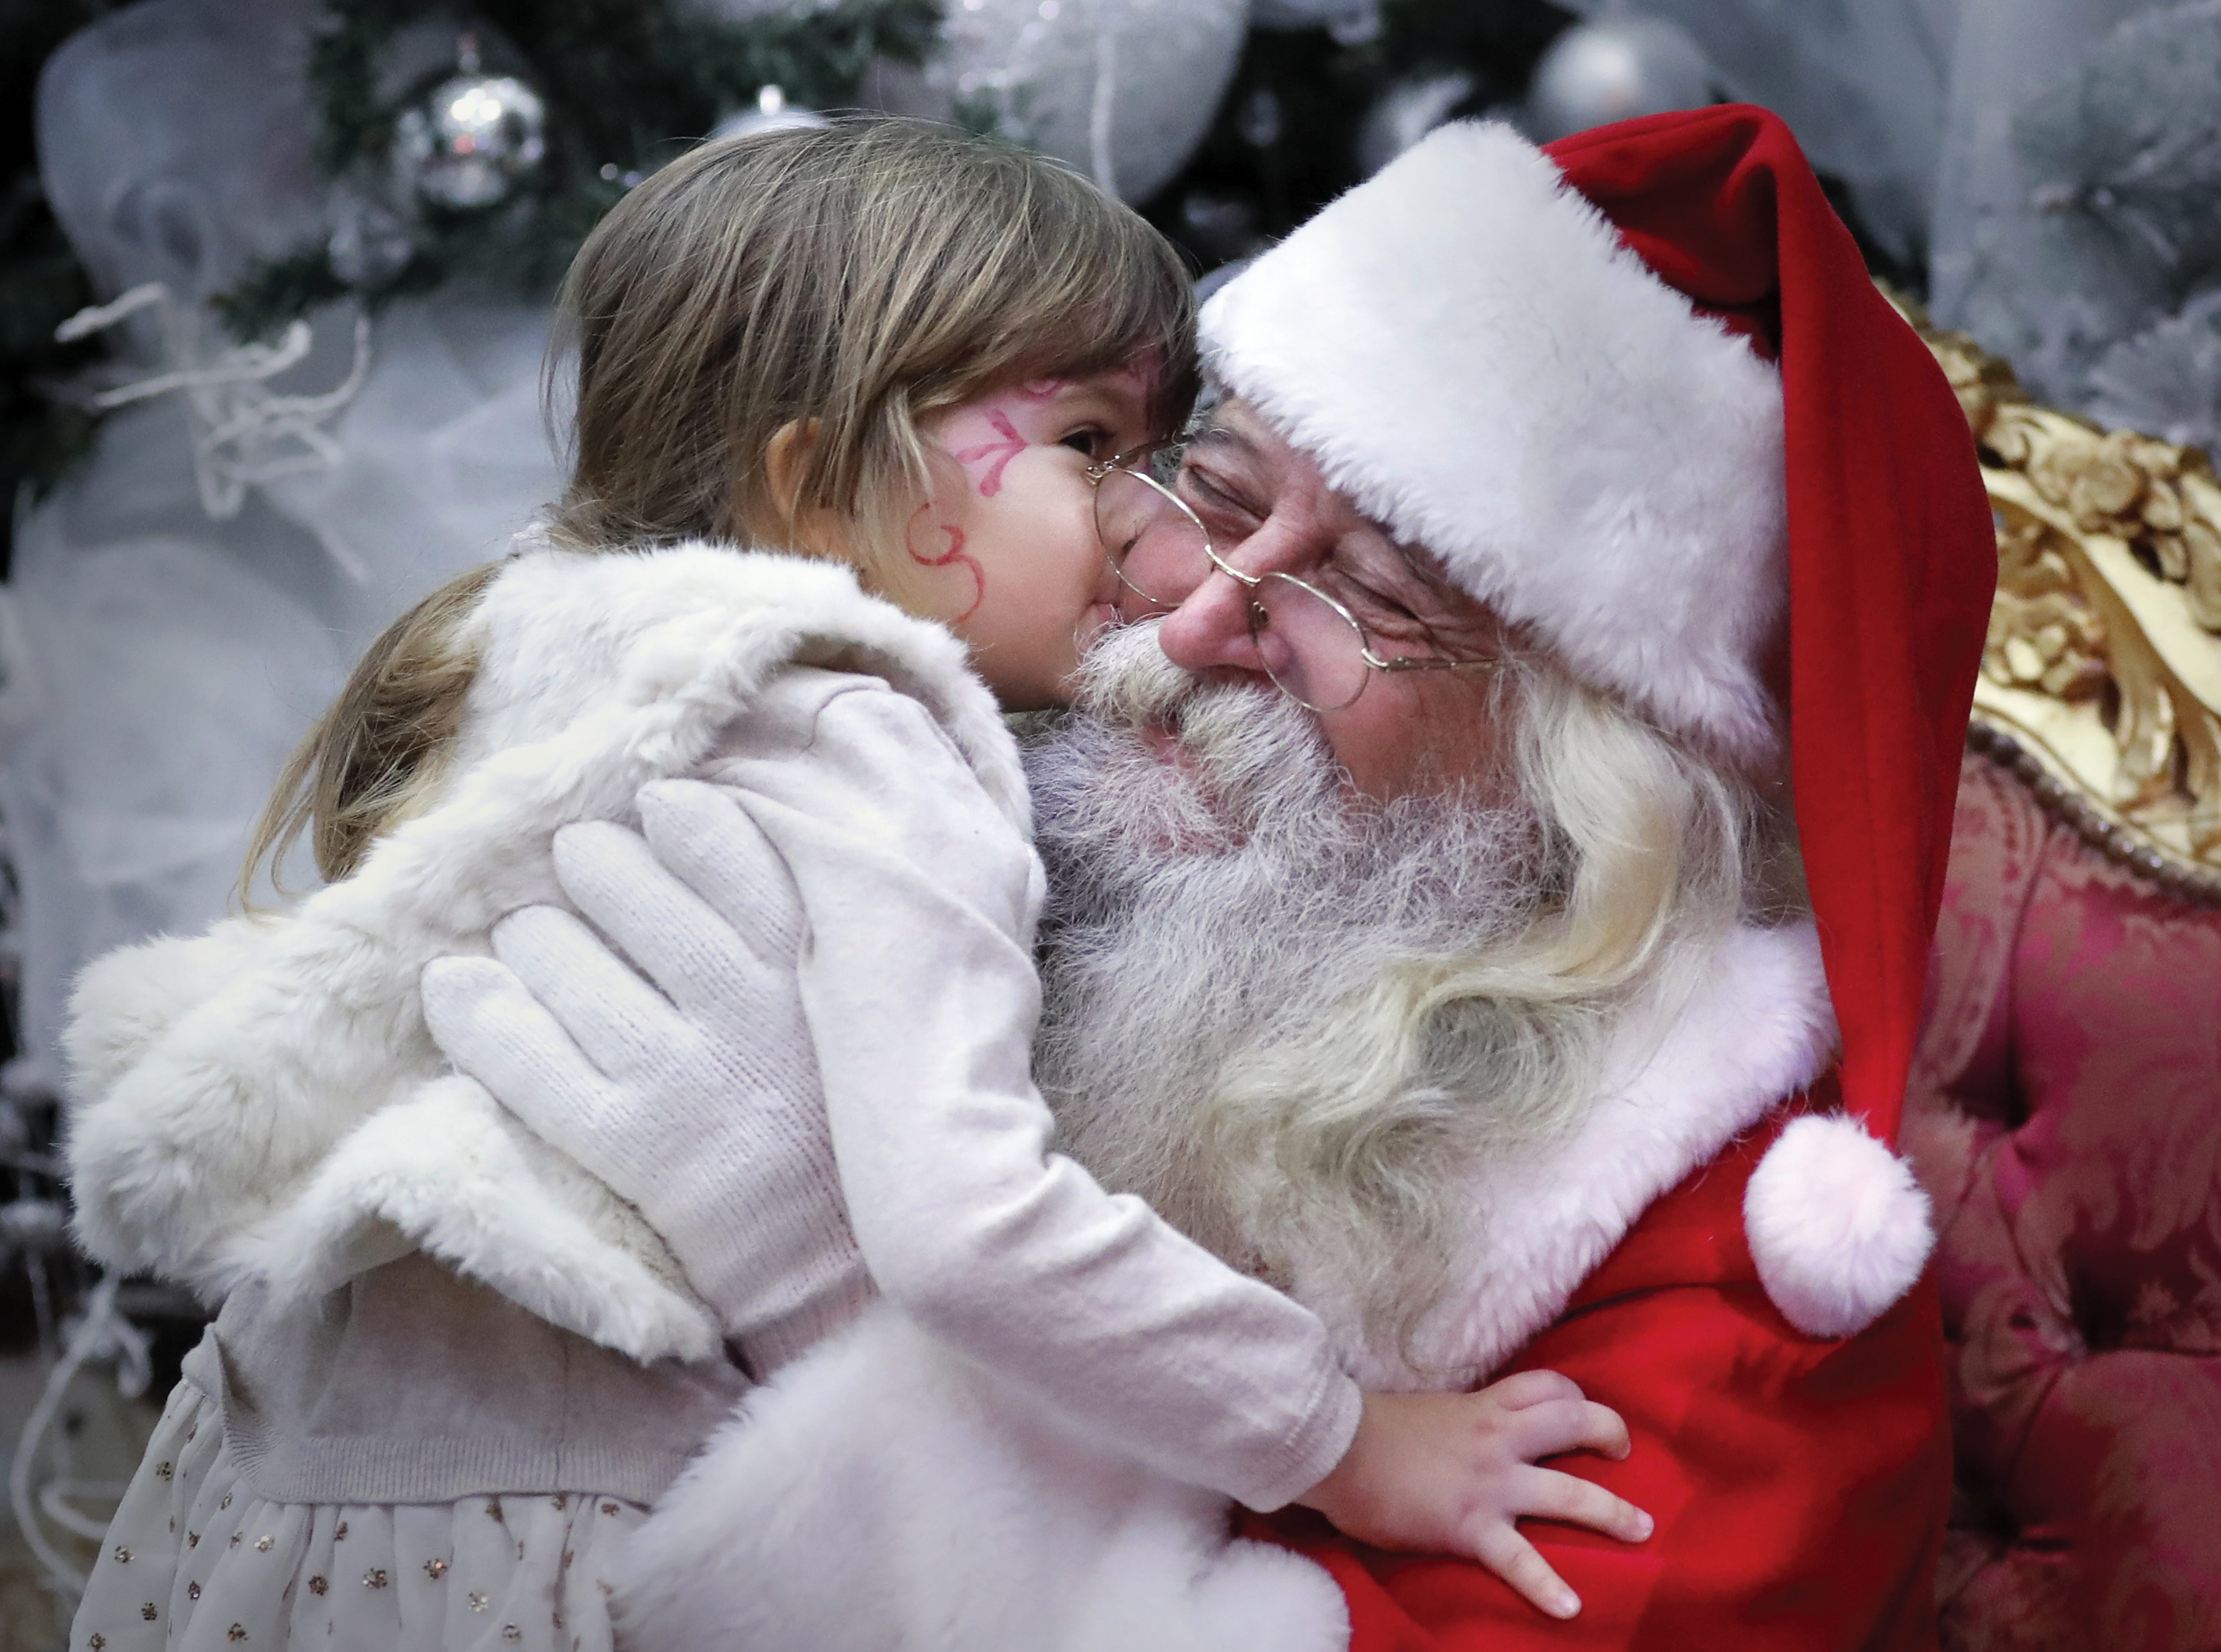 A Santa is kissed by a Romanian girl before giving her a gift while attending a Christmas Tree show dedicated to the children of the fallen or wounded soldiers of the Romanian Army, who died or got injured while serving in Afghanistan and Iraq, in Bucharest, Romania on Dec. 14, 2018. The children could play in different playground areas before receiving their Christmas gifts. The event was organized by the Ministry of Defense in collaboration with the charity association of the Romanian Armed Forces named 'Comrades'.